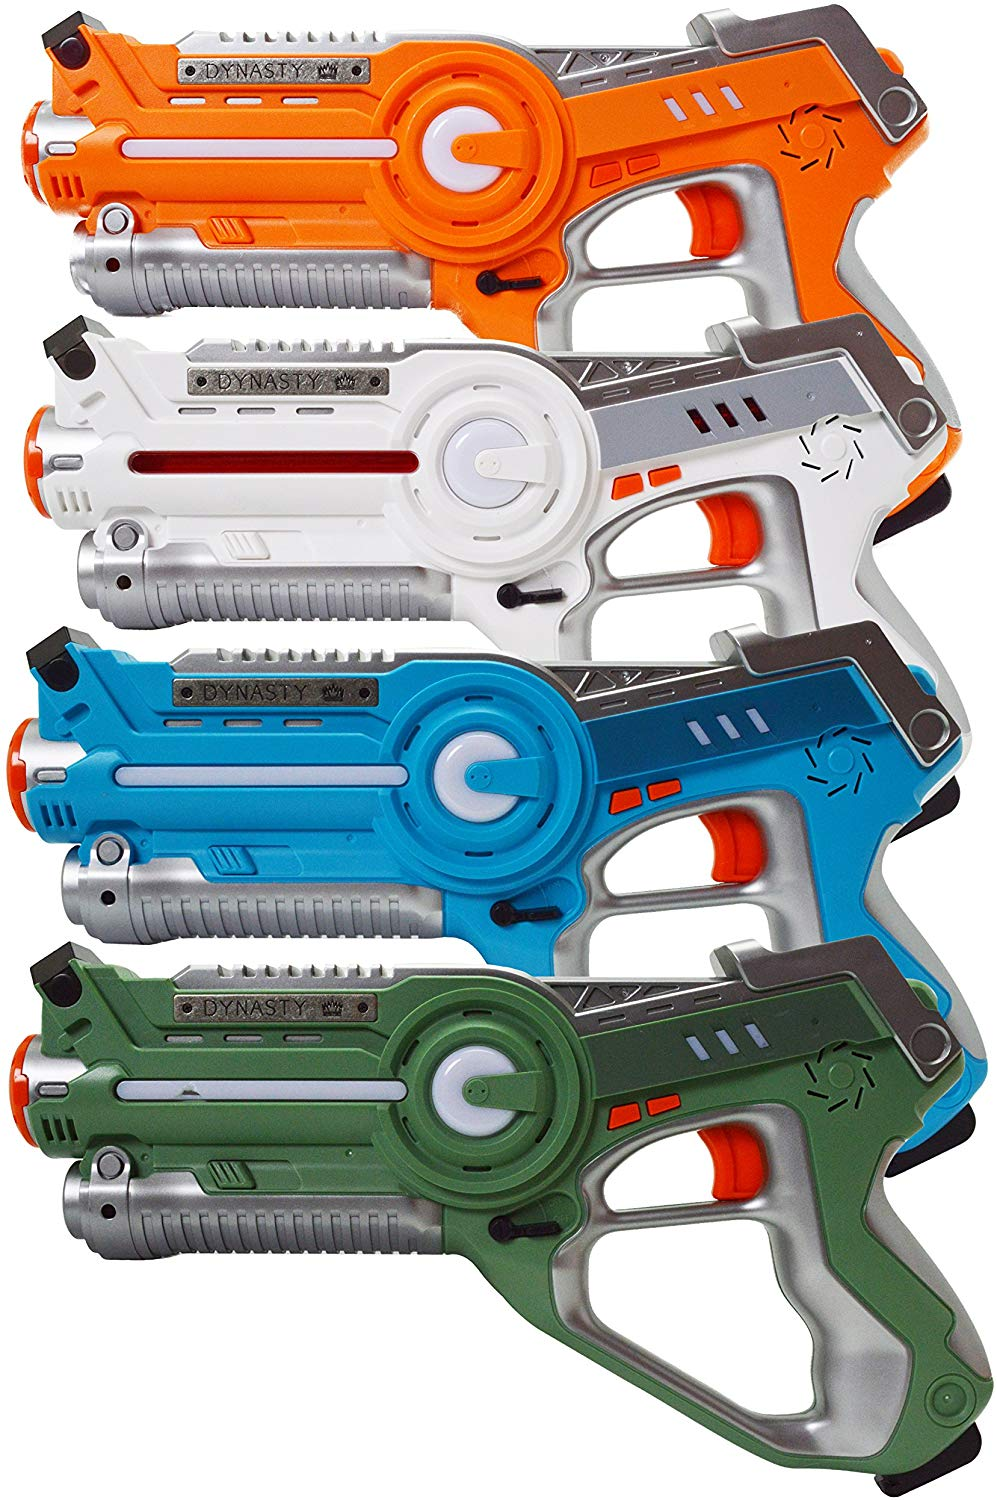 Laser Tag Set Toys and Carrying Case for Kids Multiplayer 4 Pack